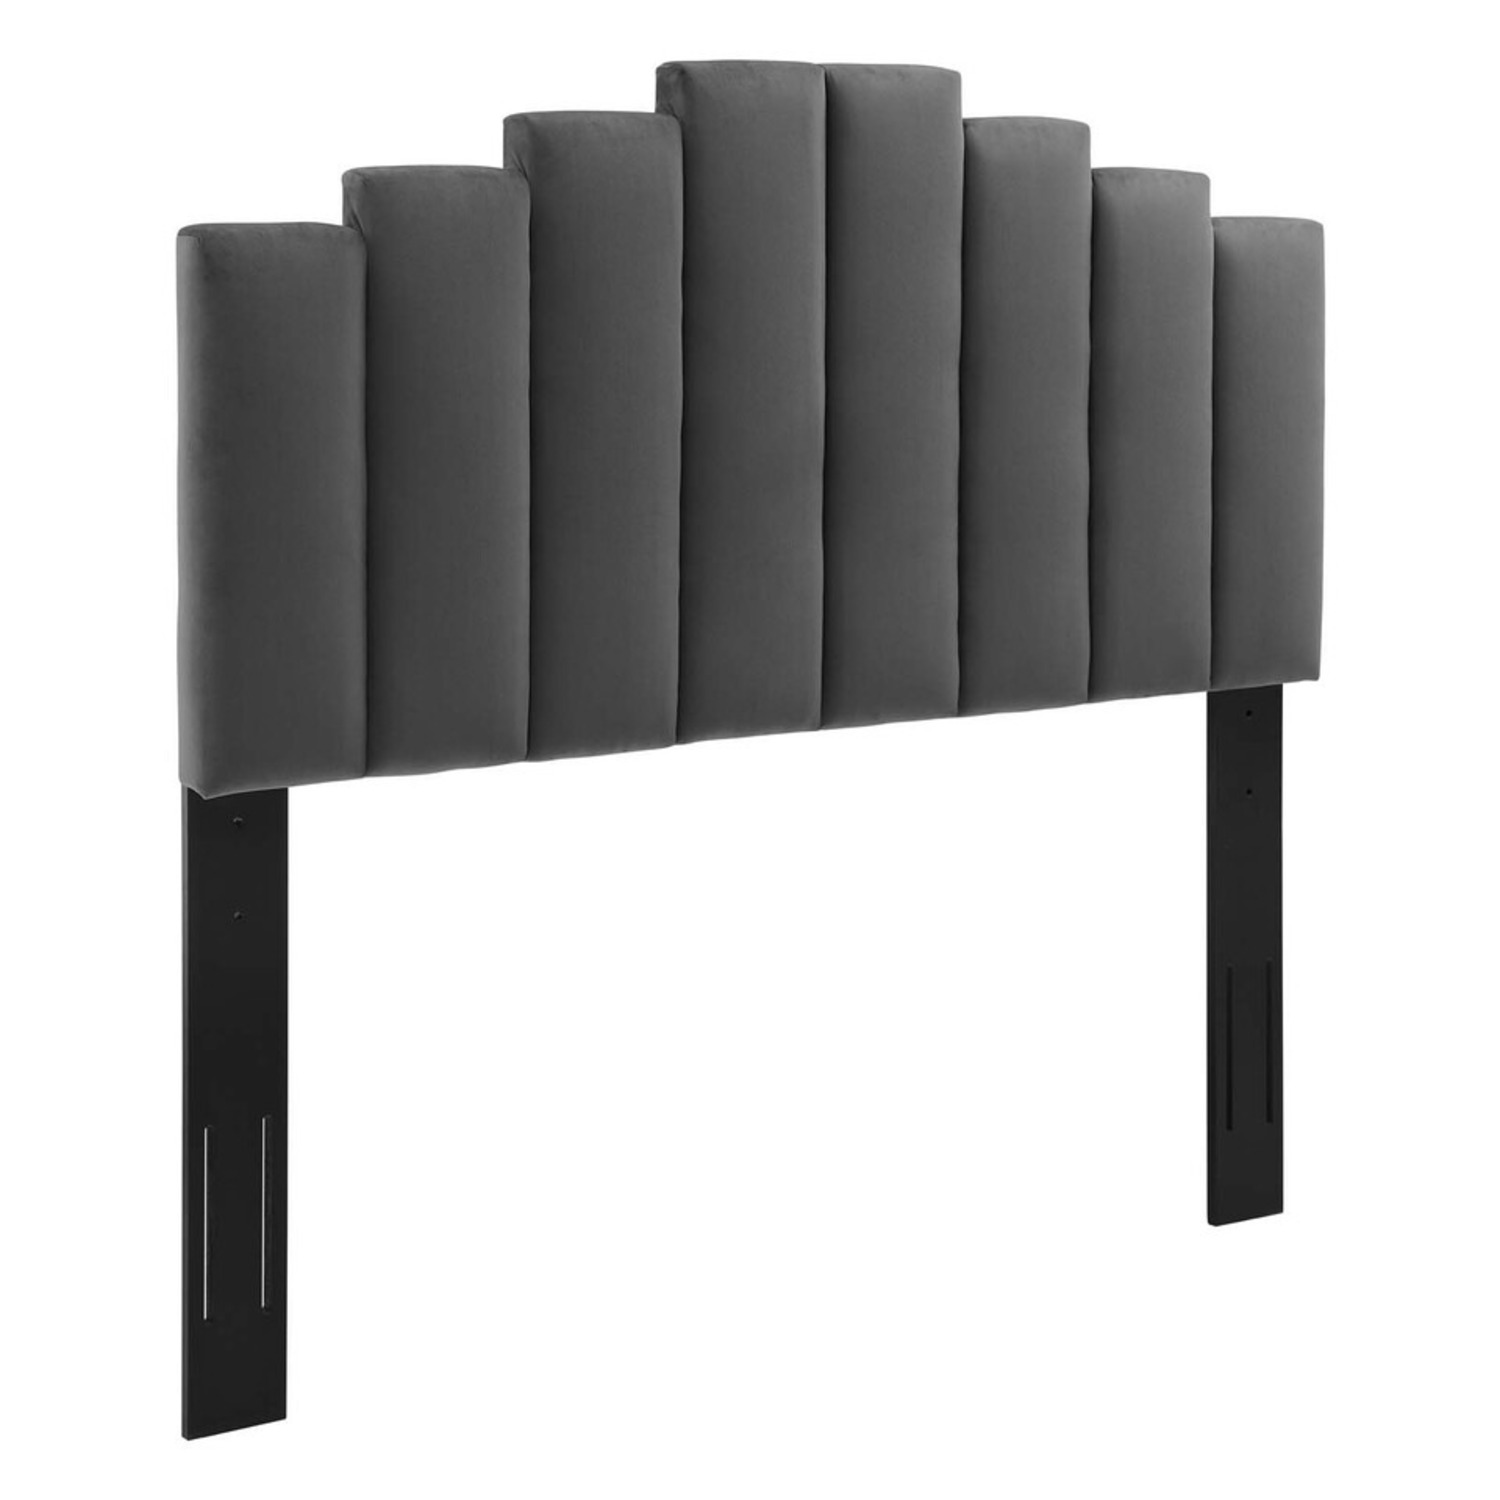 Twin Bed In Charcoal Fabric W/ Dense Foam Padding - image-6